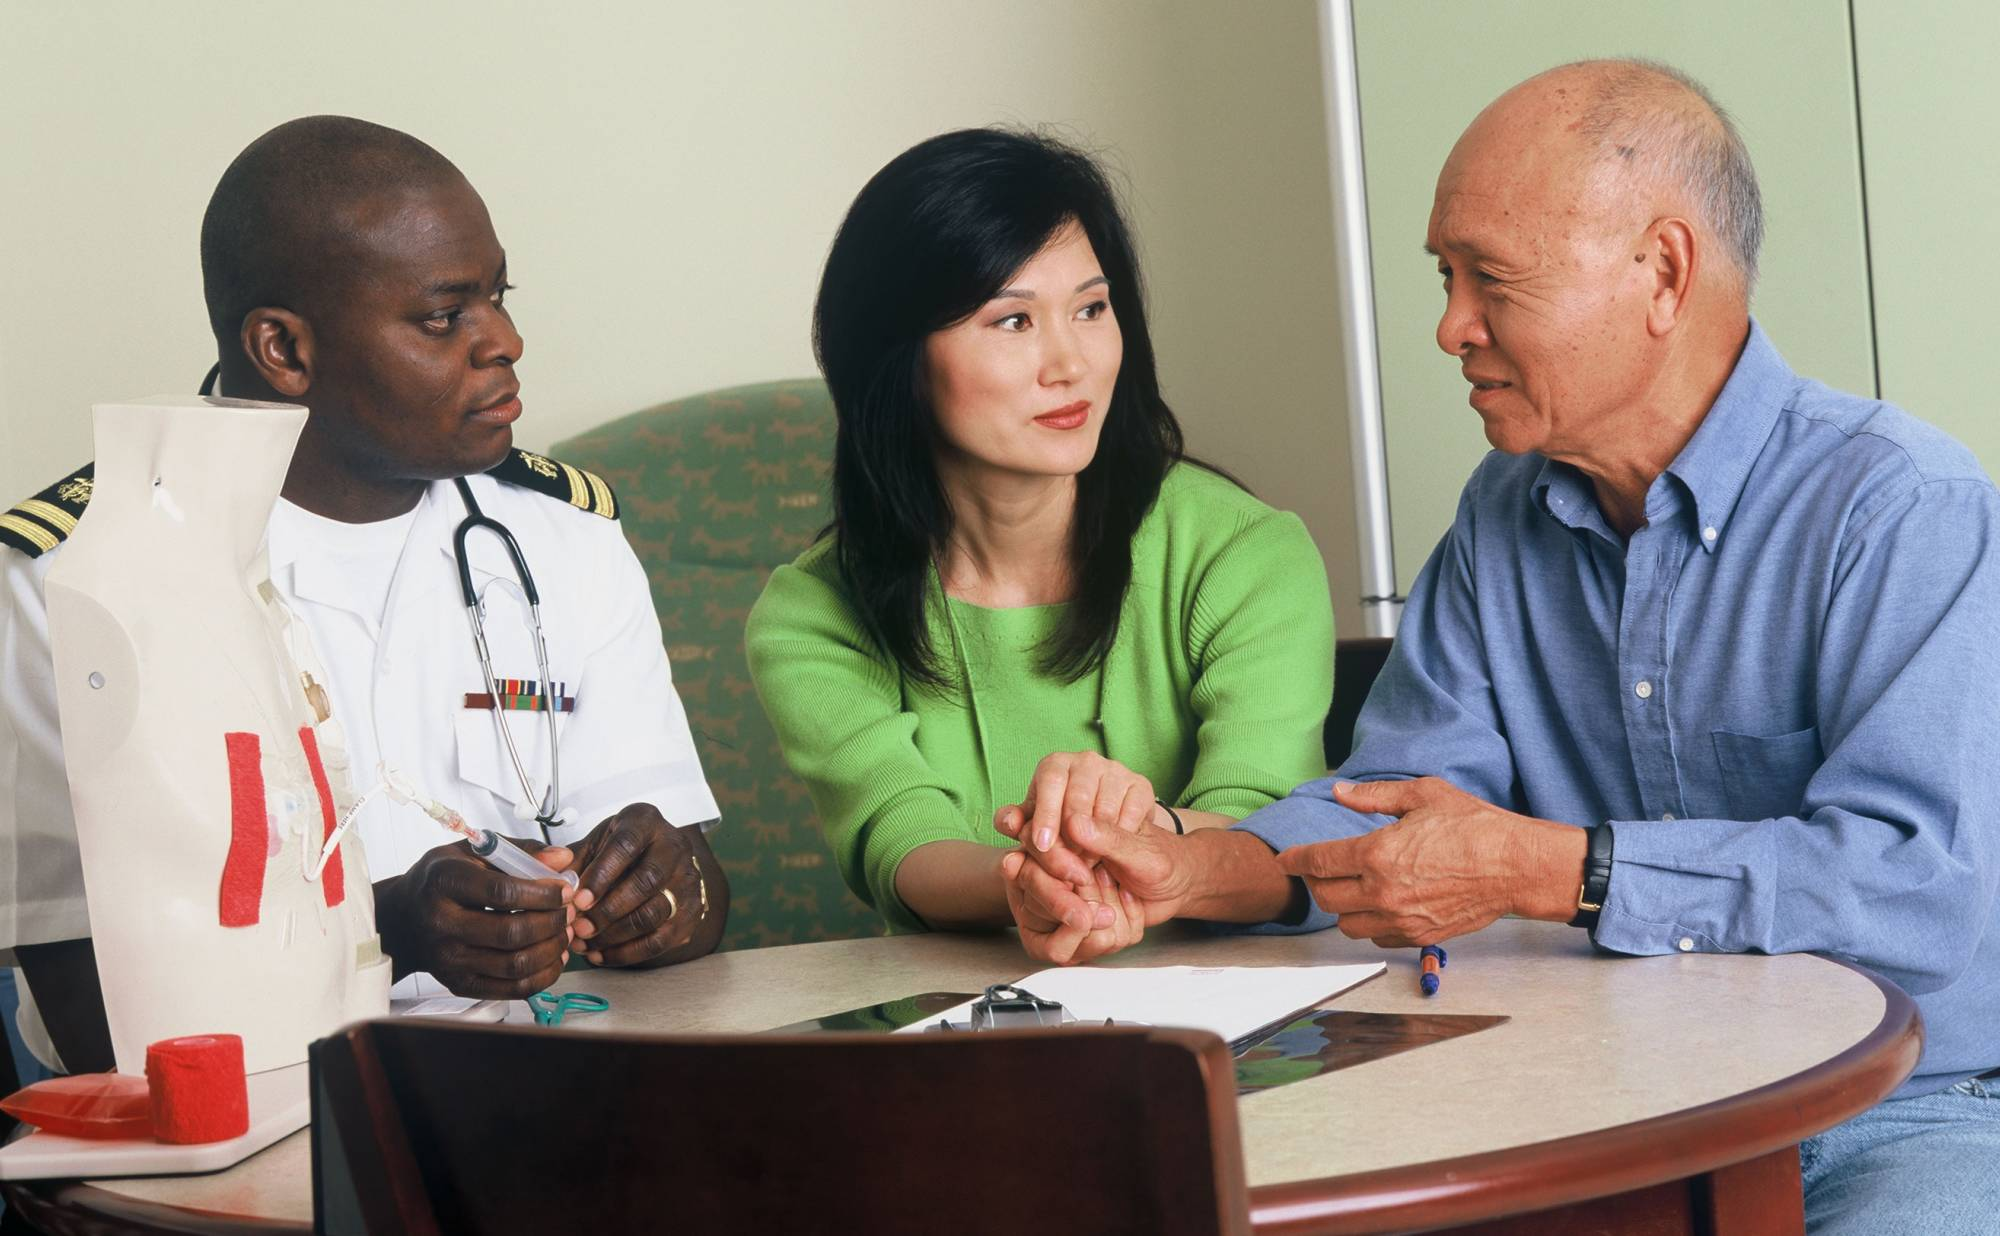 A doctor consults with a family.